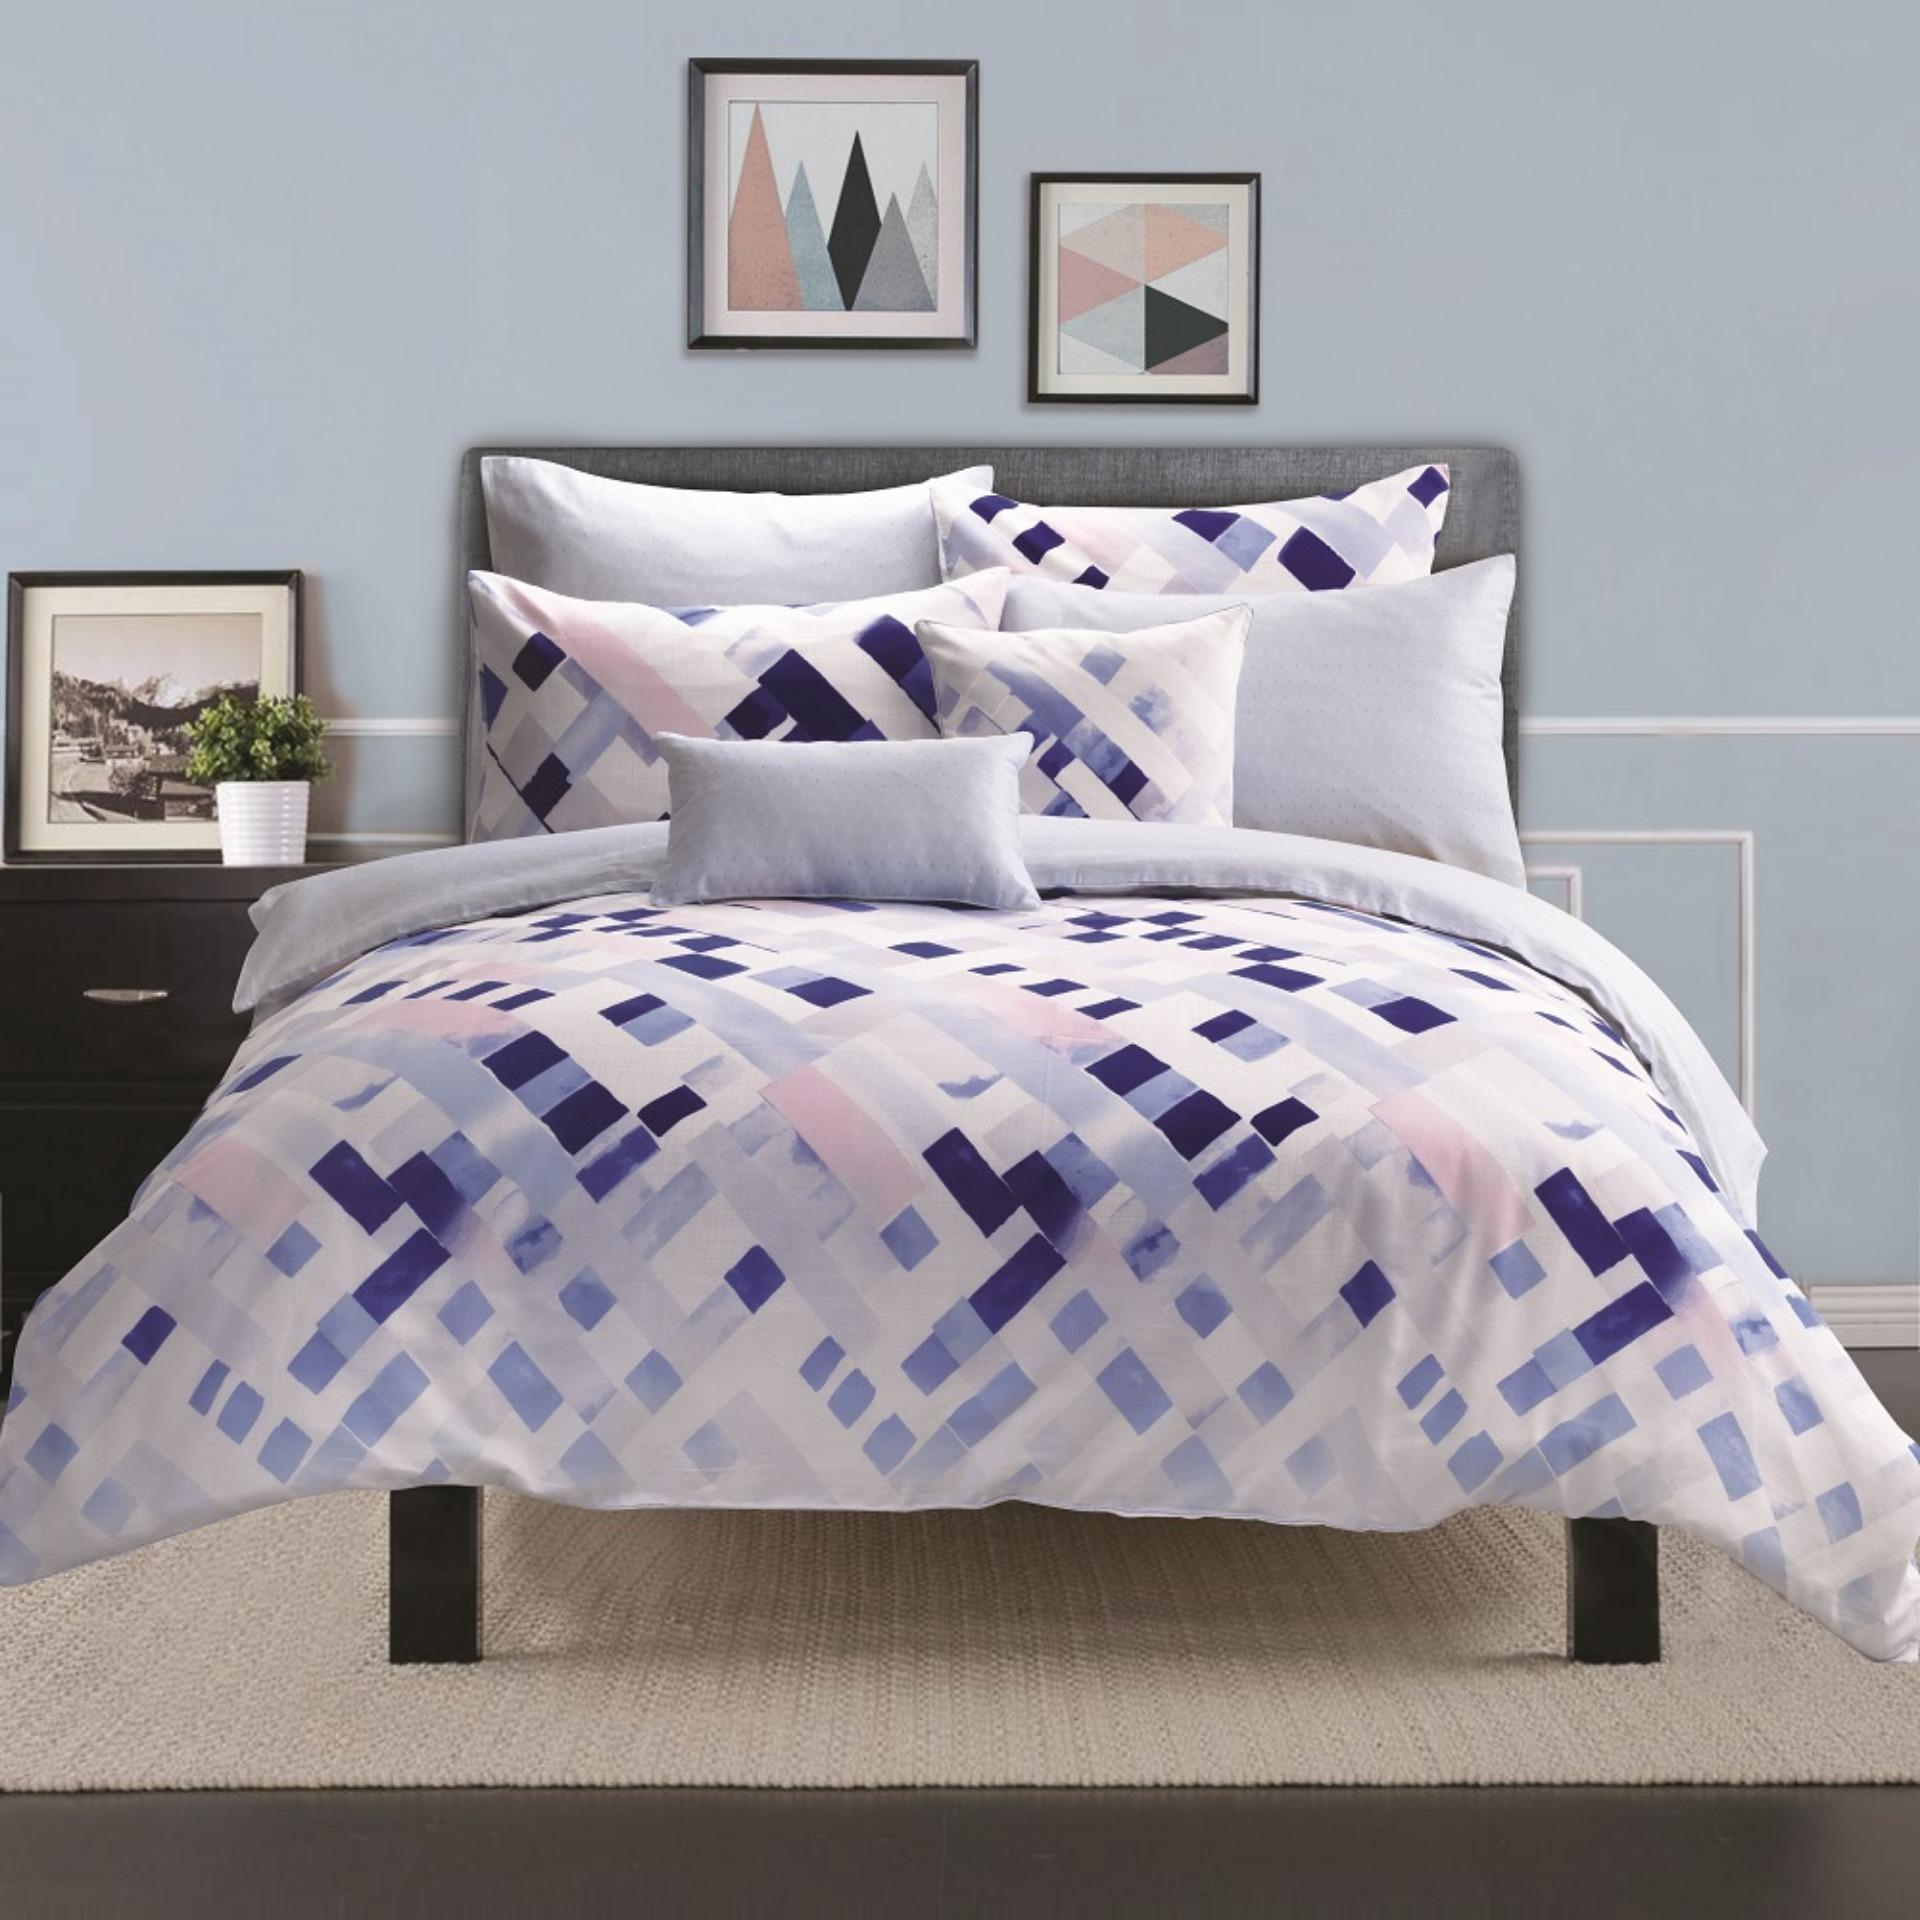 Akemi Cotton Select Affluence Farley Quilt Cover Set Coupon Code